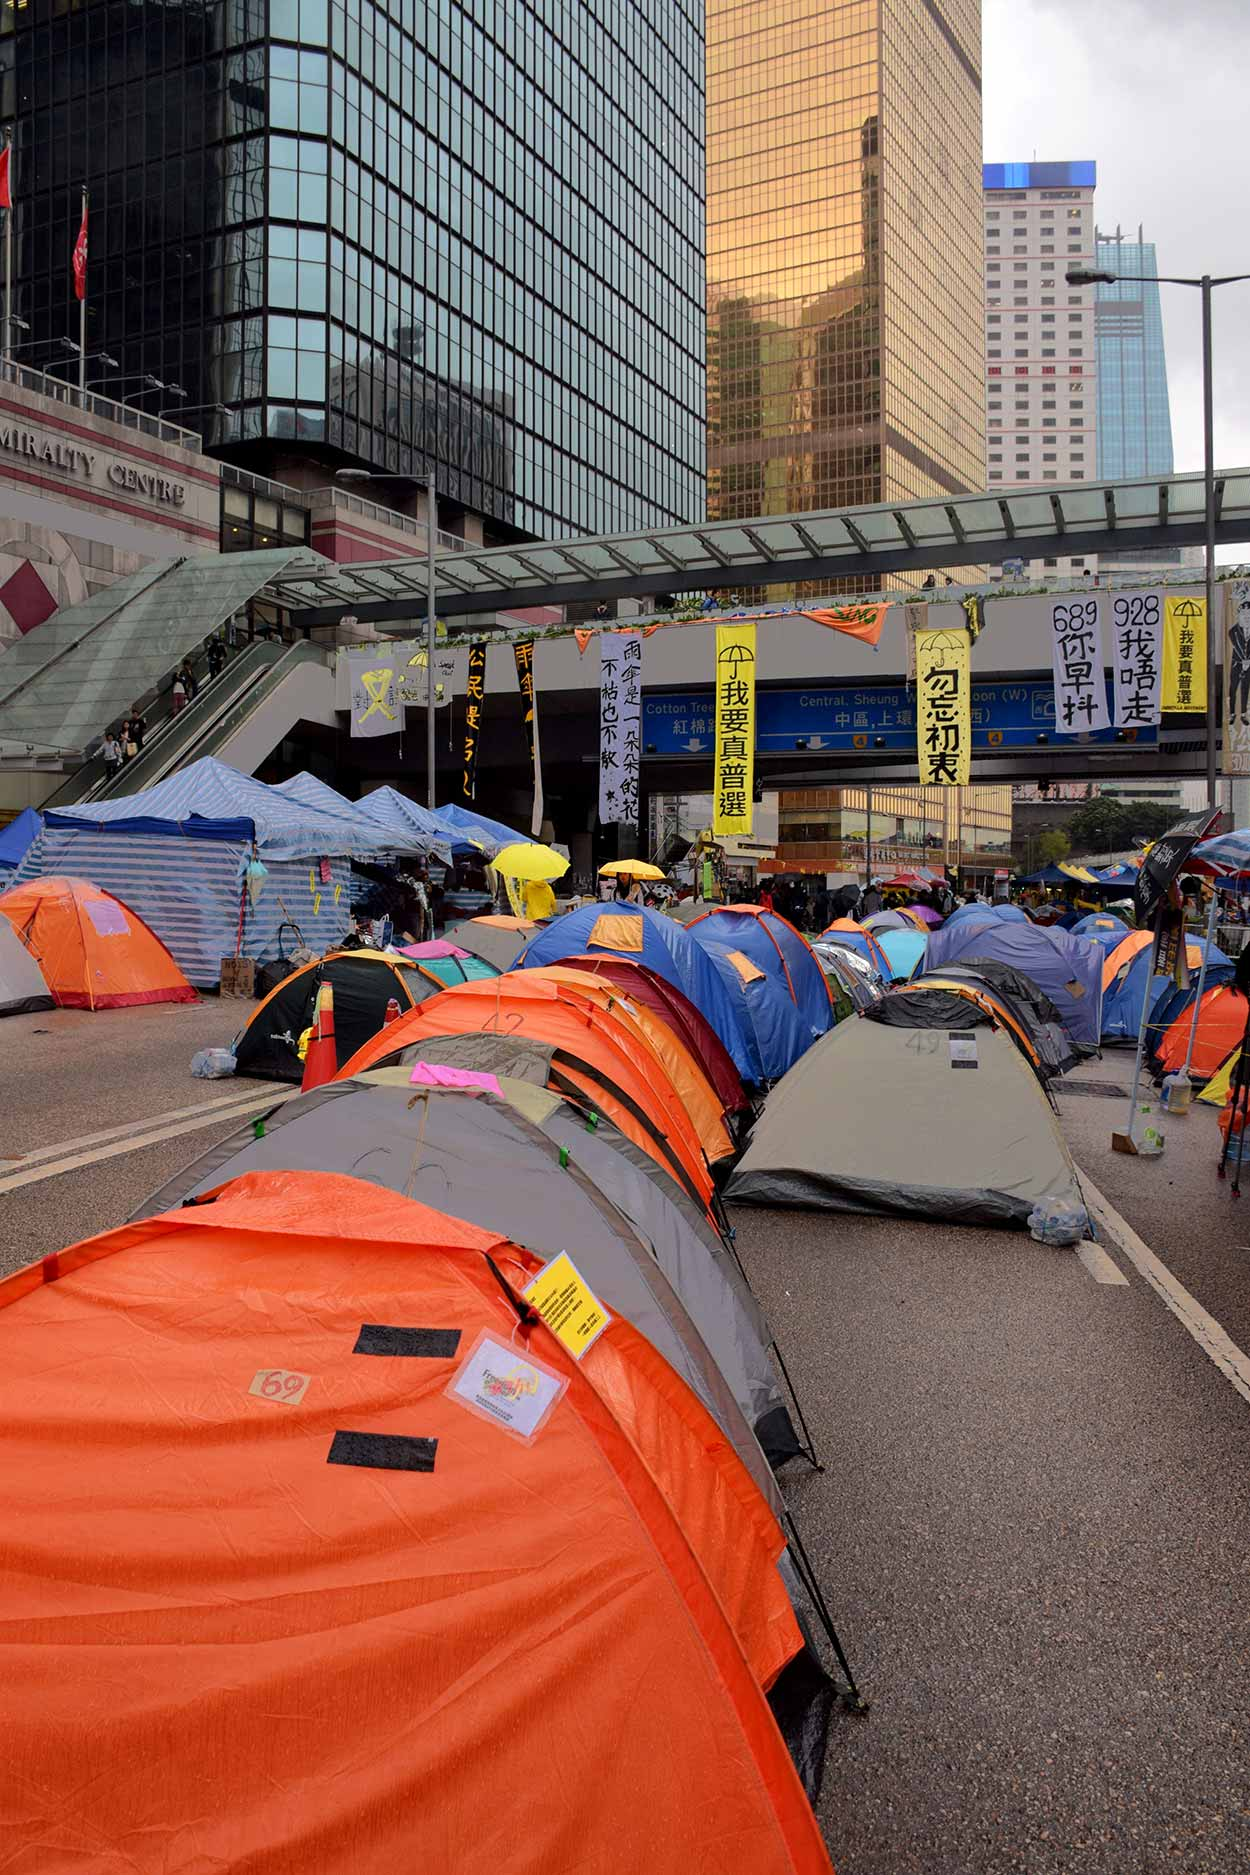 Umbrella Revolution tents pitched on Connaught Road, Admiralty, Hong Kong, China